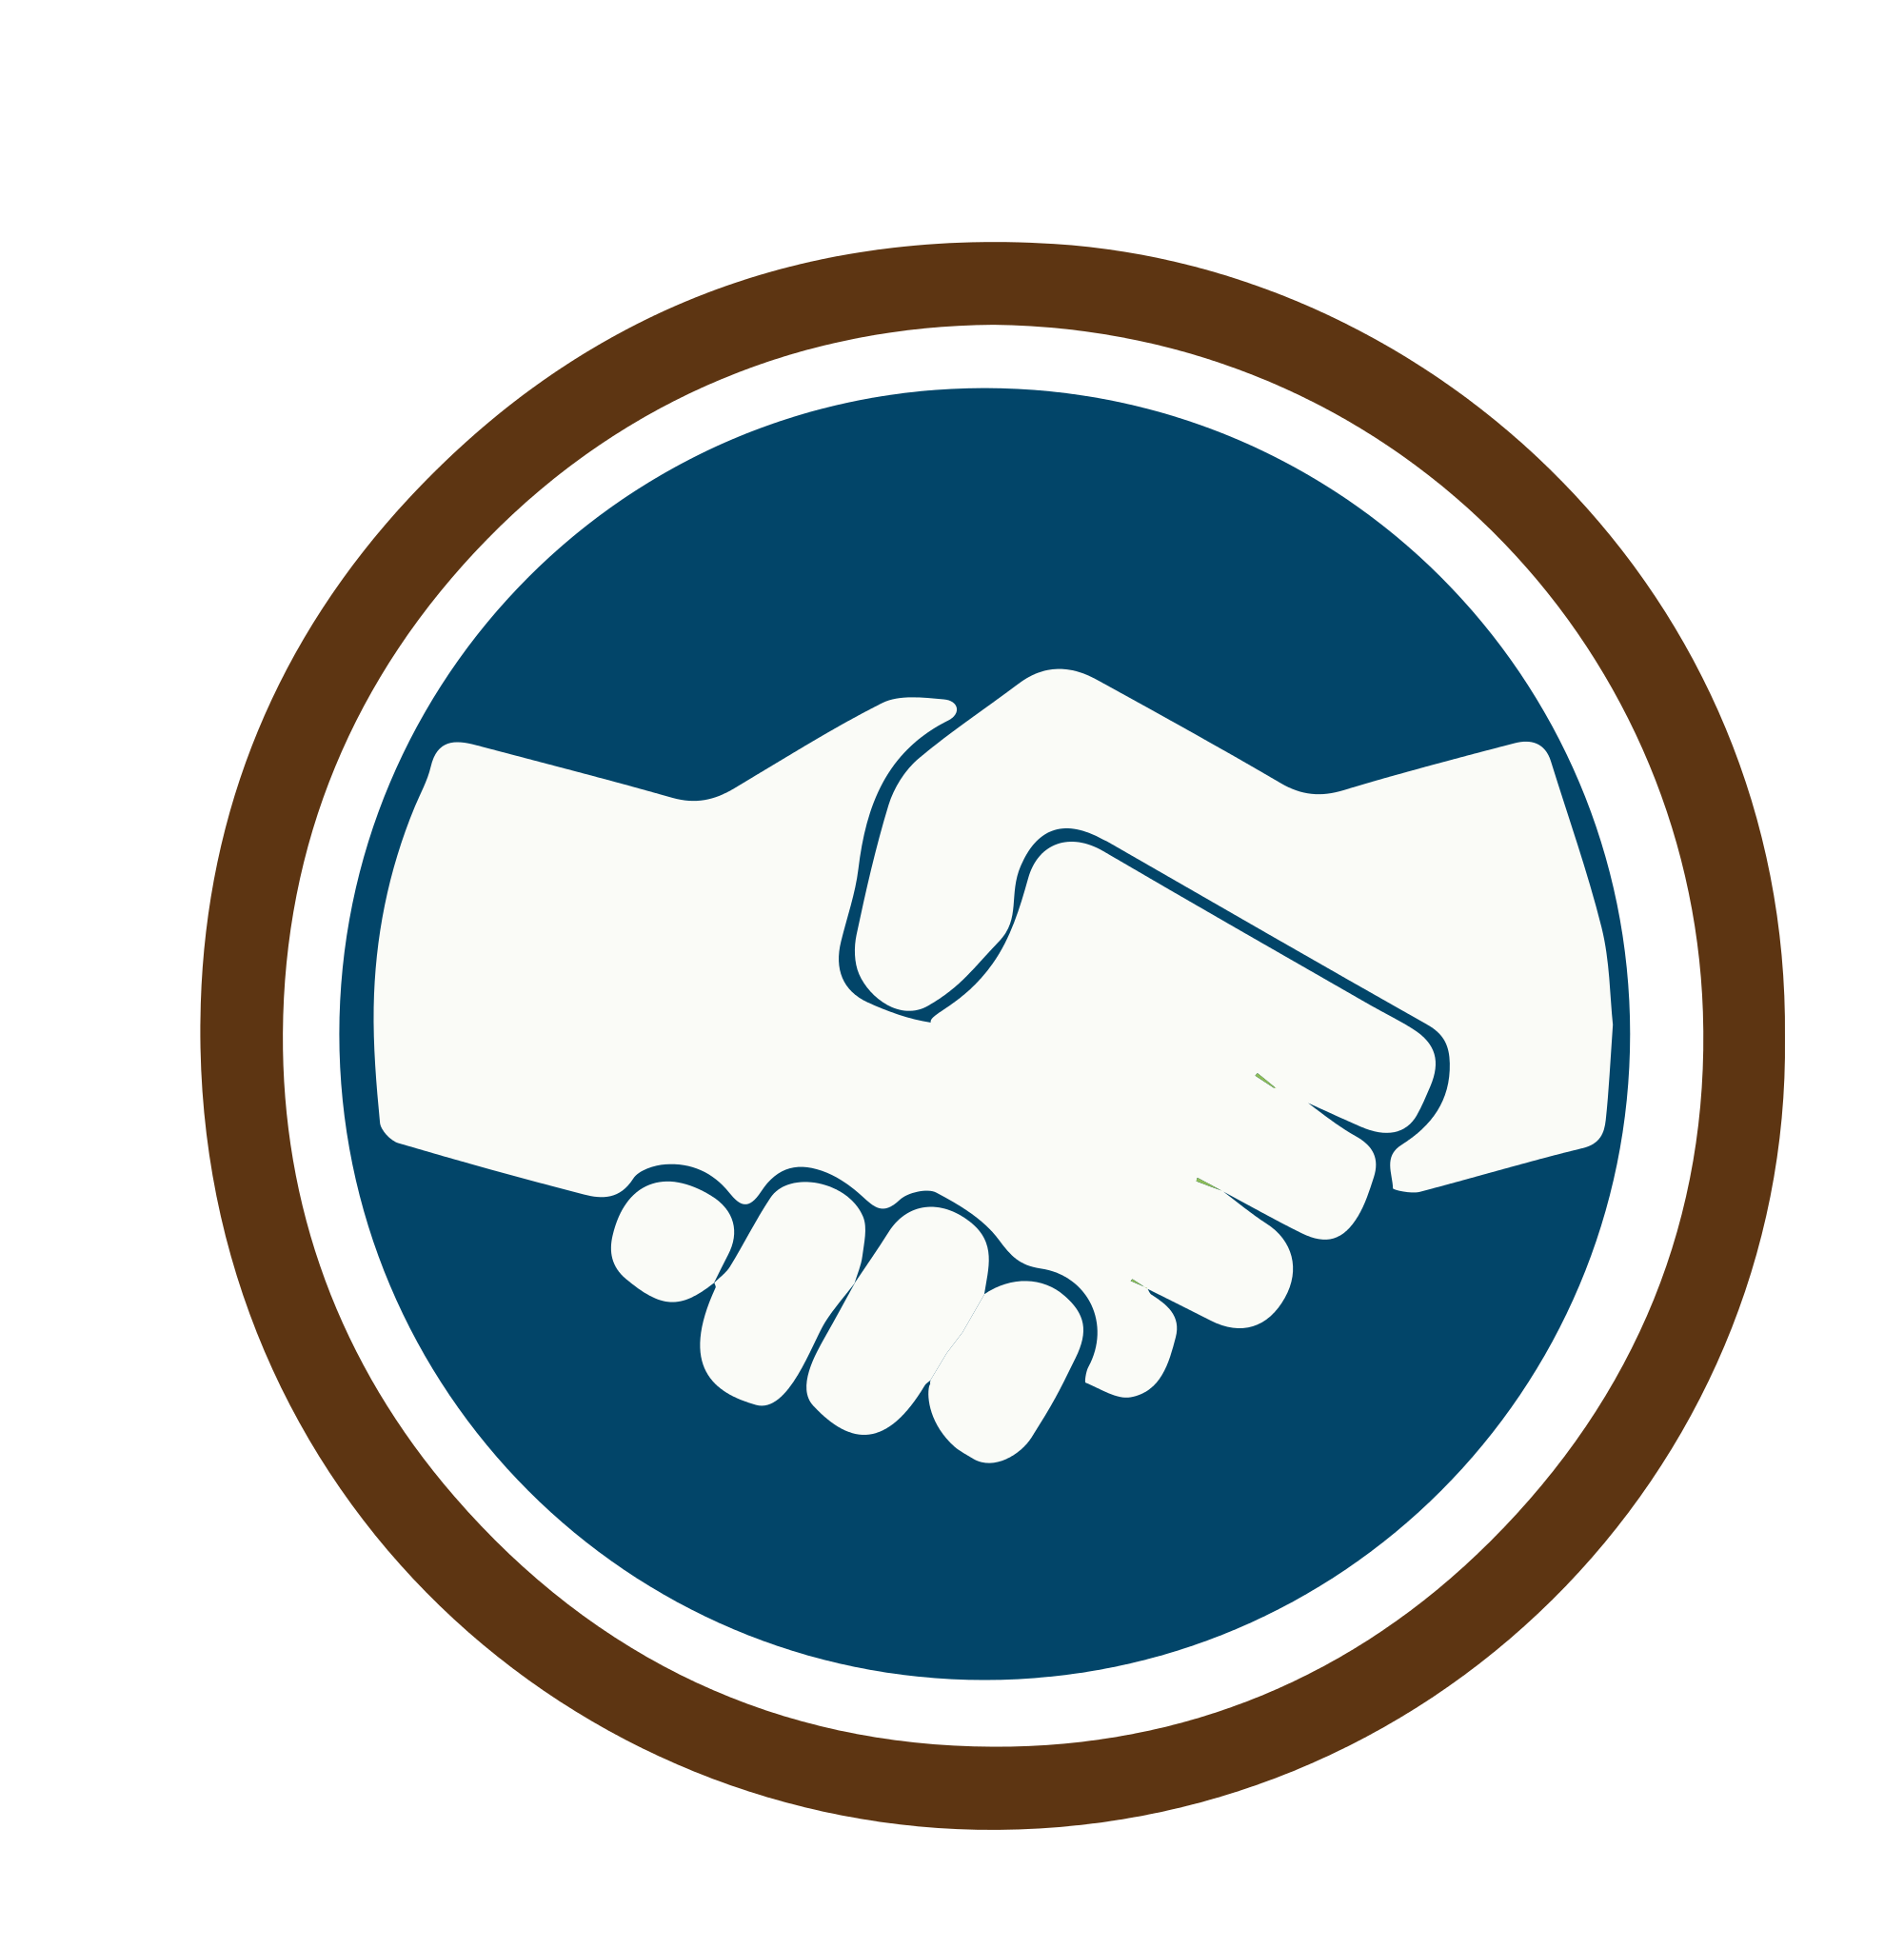 Handshake logo png. File svg wikimedia commons